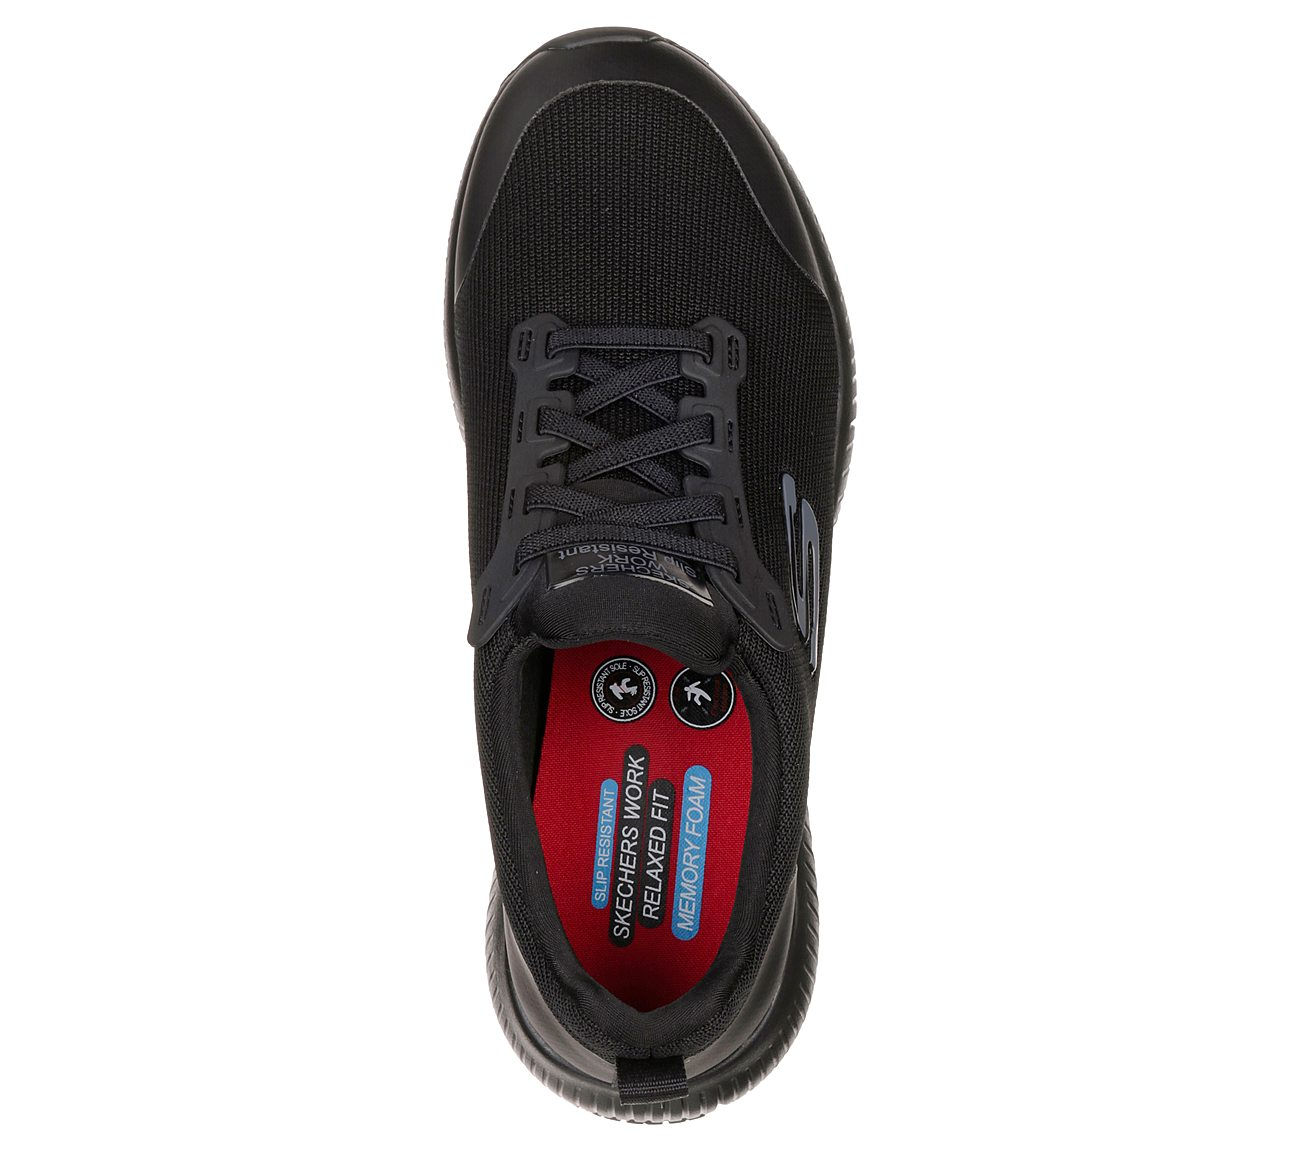 f6658a04d5 Buy SKECHERS Work: Squad SR Work Shoes only $65.00